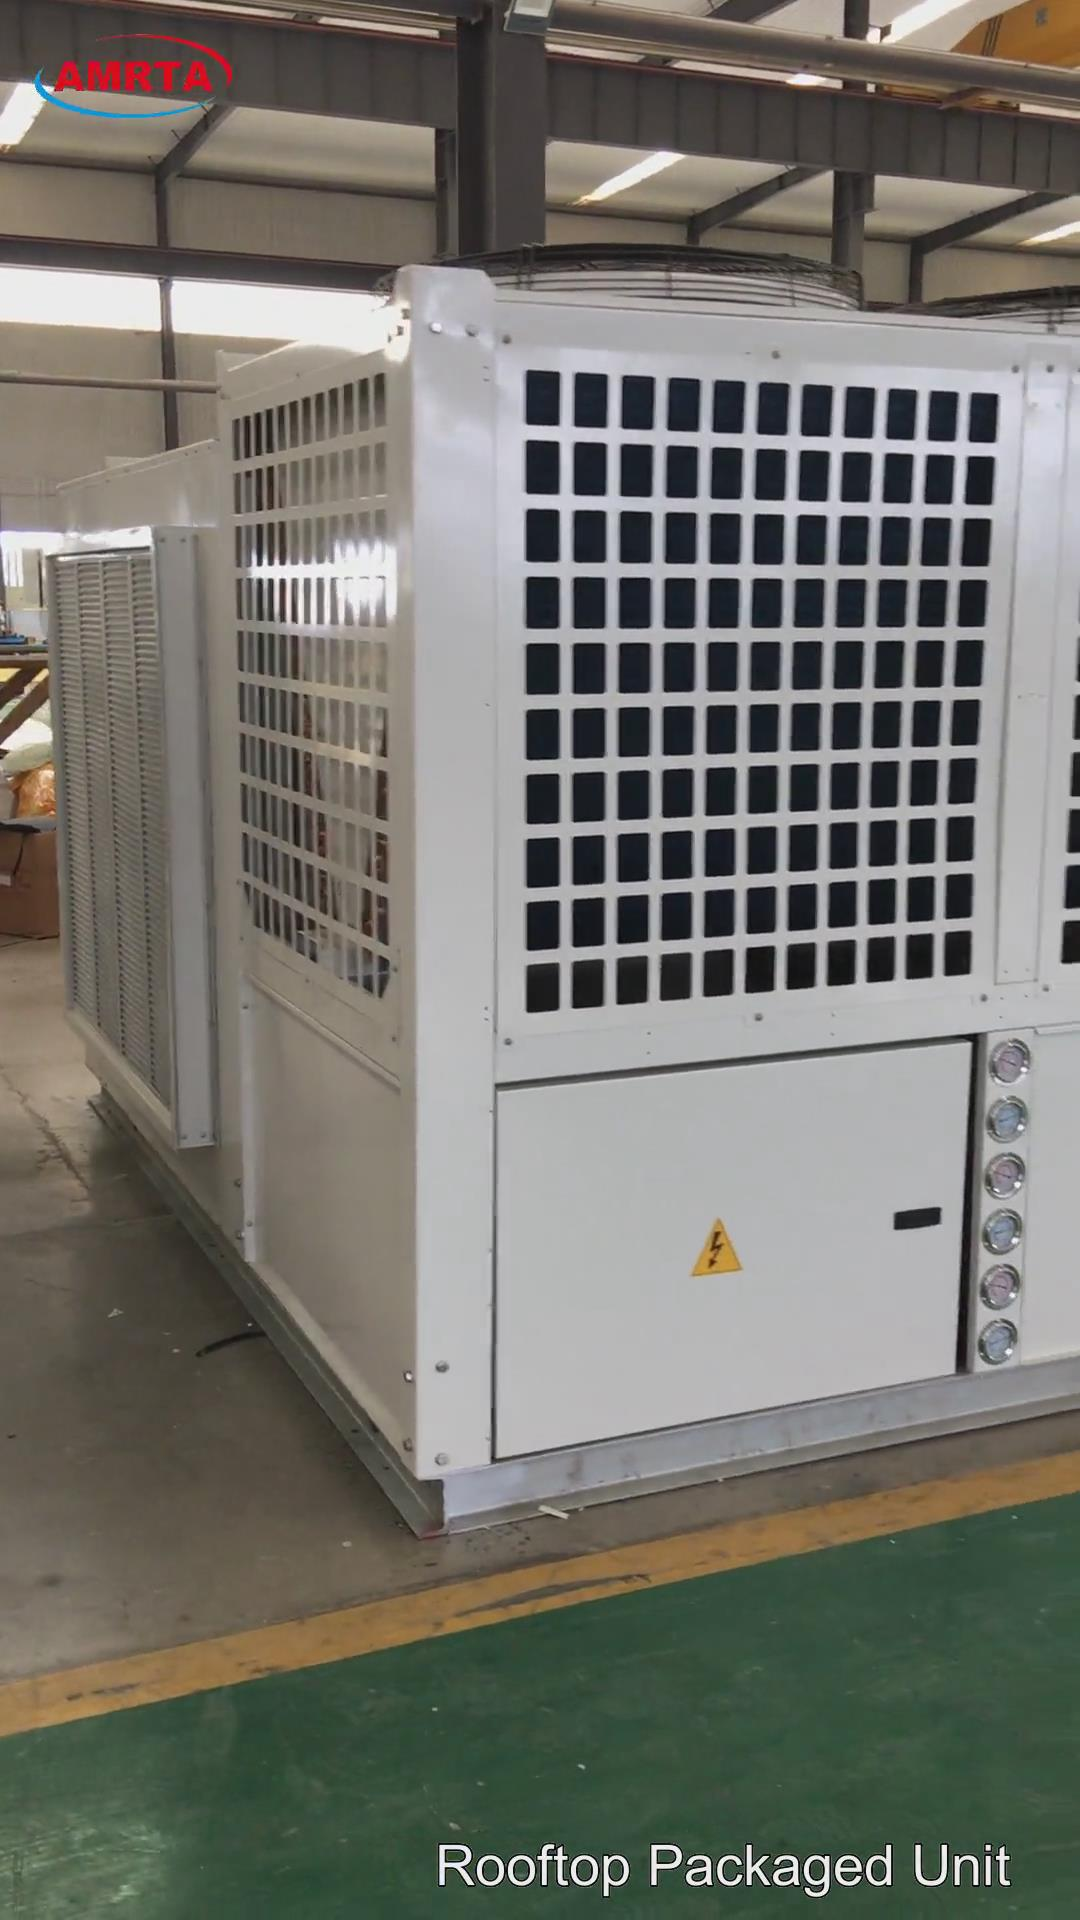 105kW Rooftop Packaged Unit